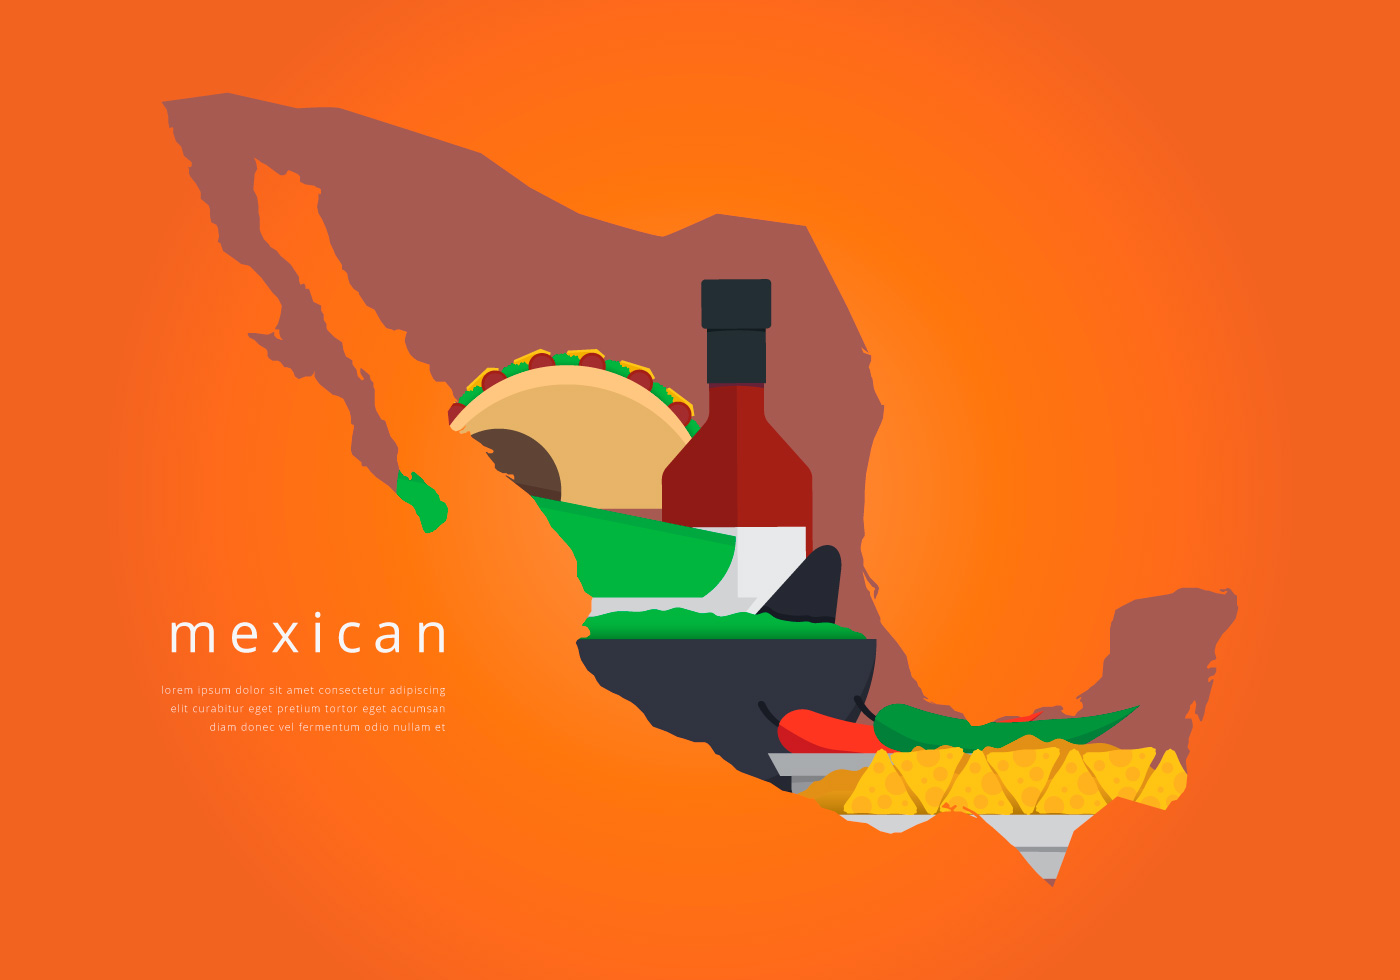 Icono Mapa Mexico Png: Mexico Map With Traditional Food Vector